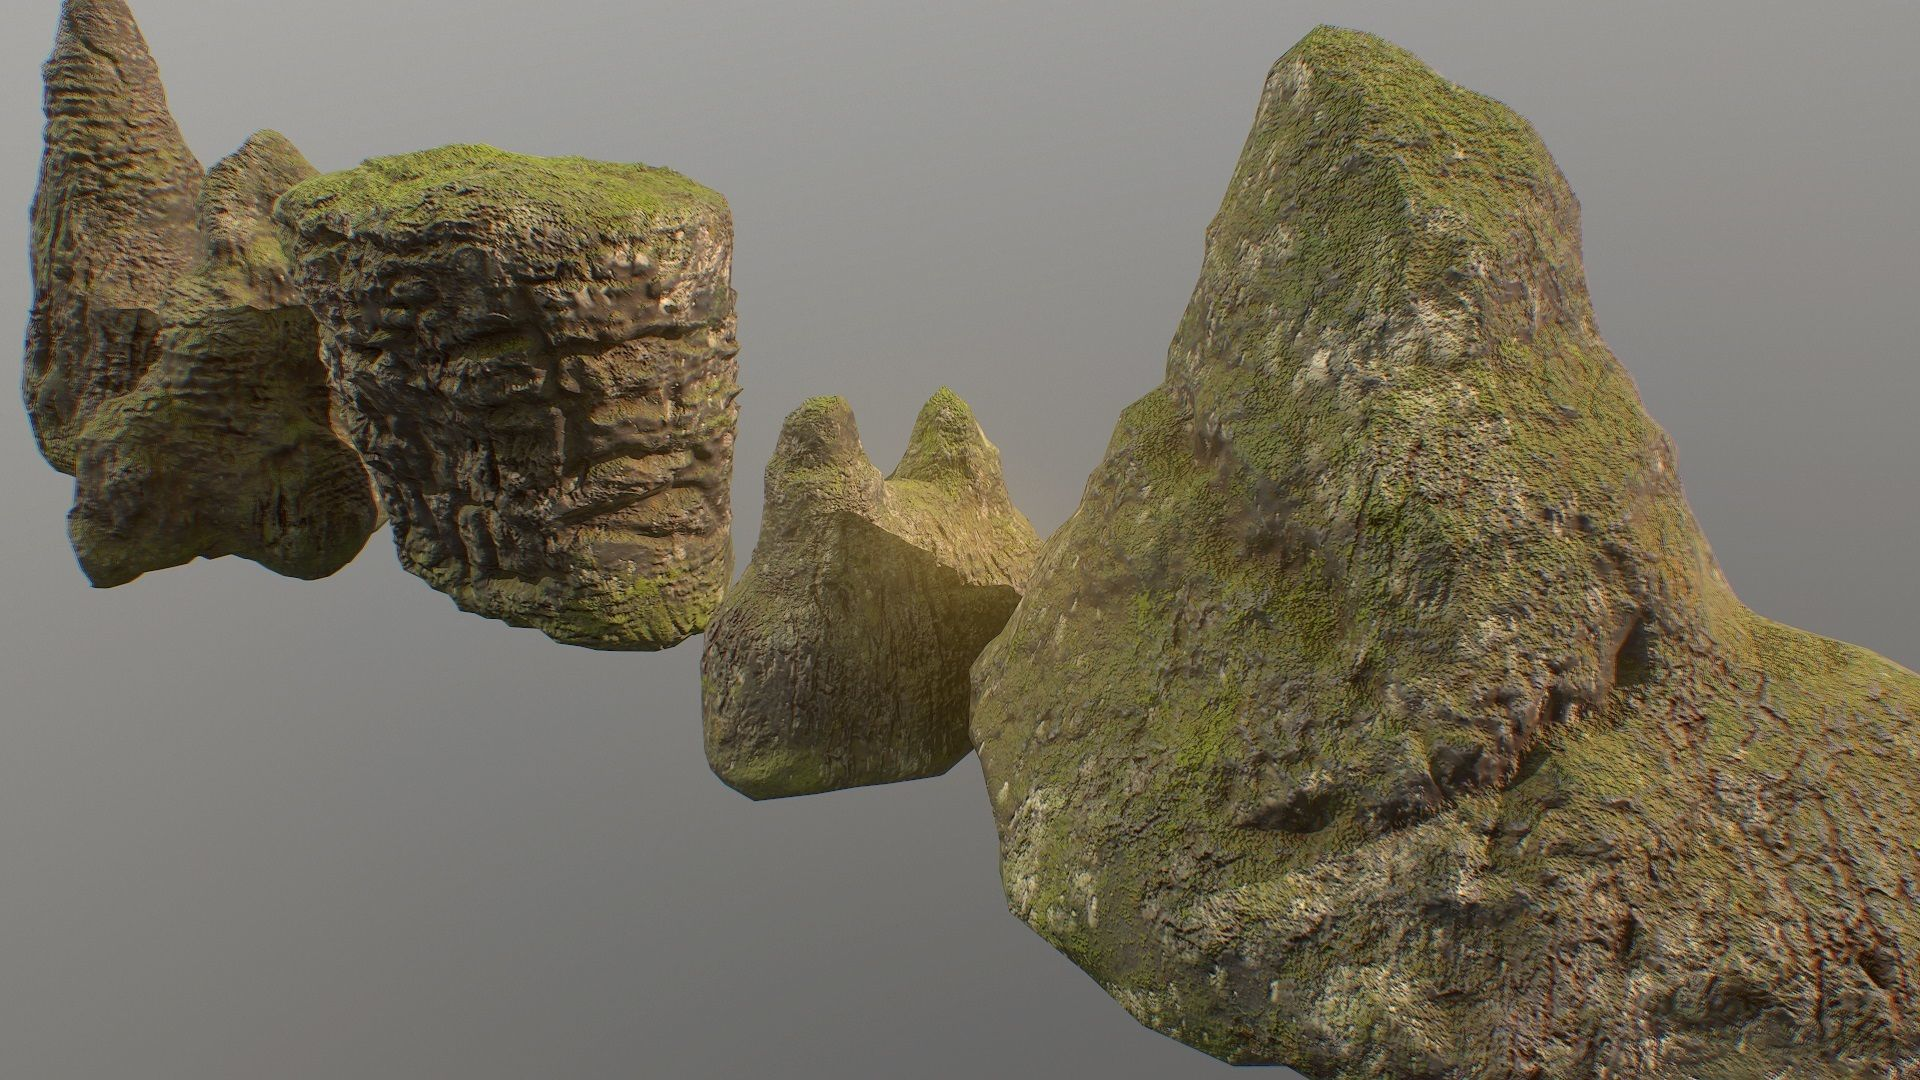 Low poly mossy rocks environment assets